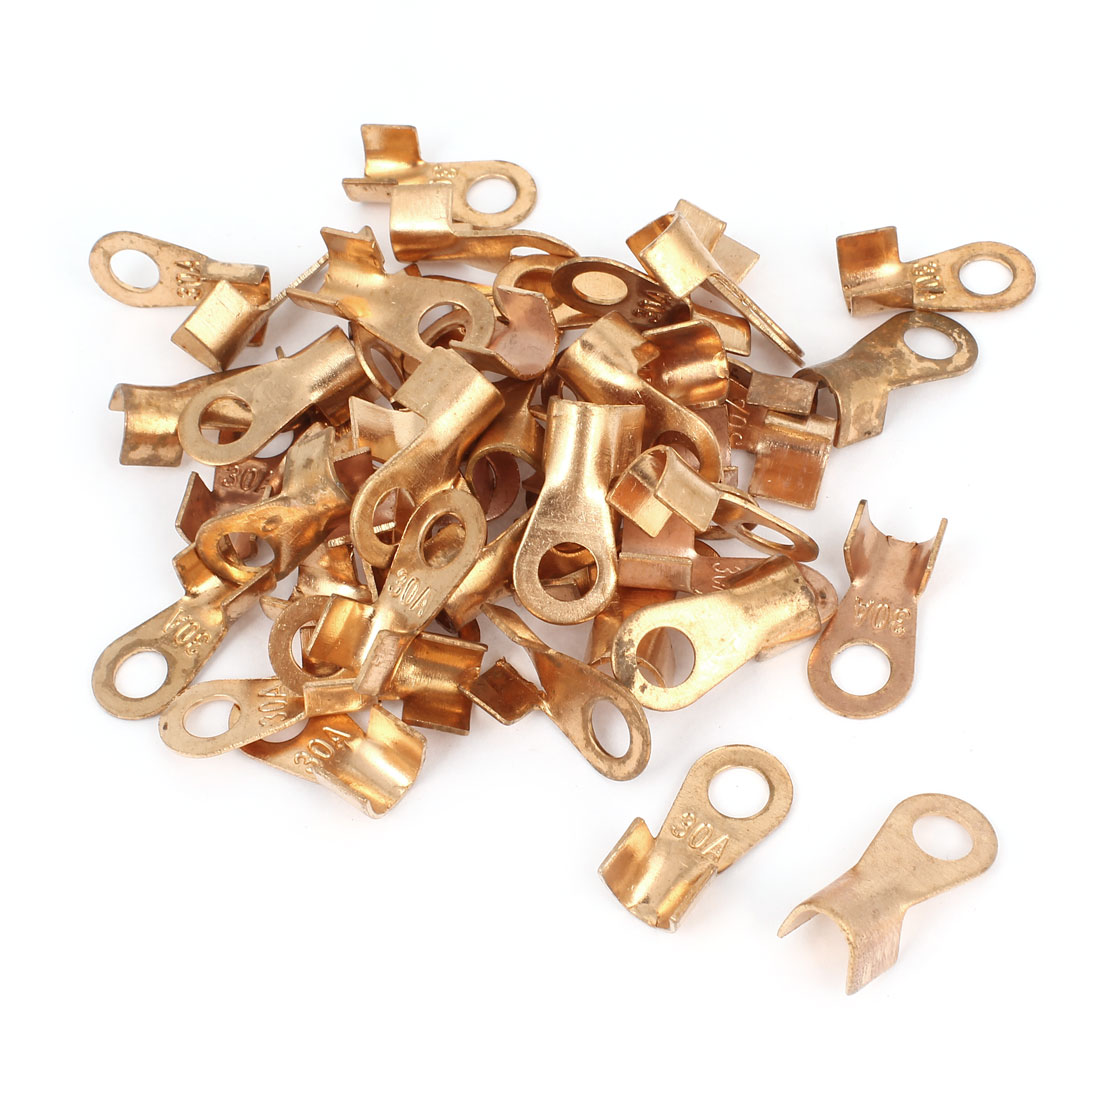 50 Pcs 30A Open Cable Connector Ring Lug Copper Passing Through Terminals